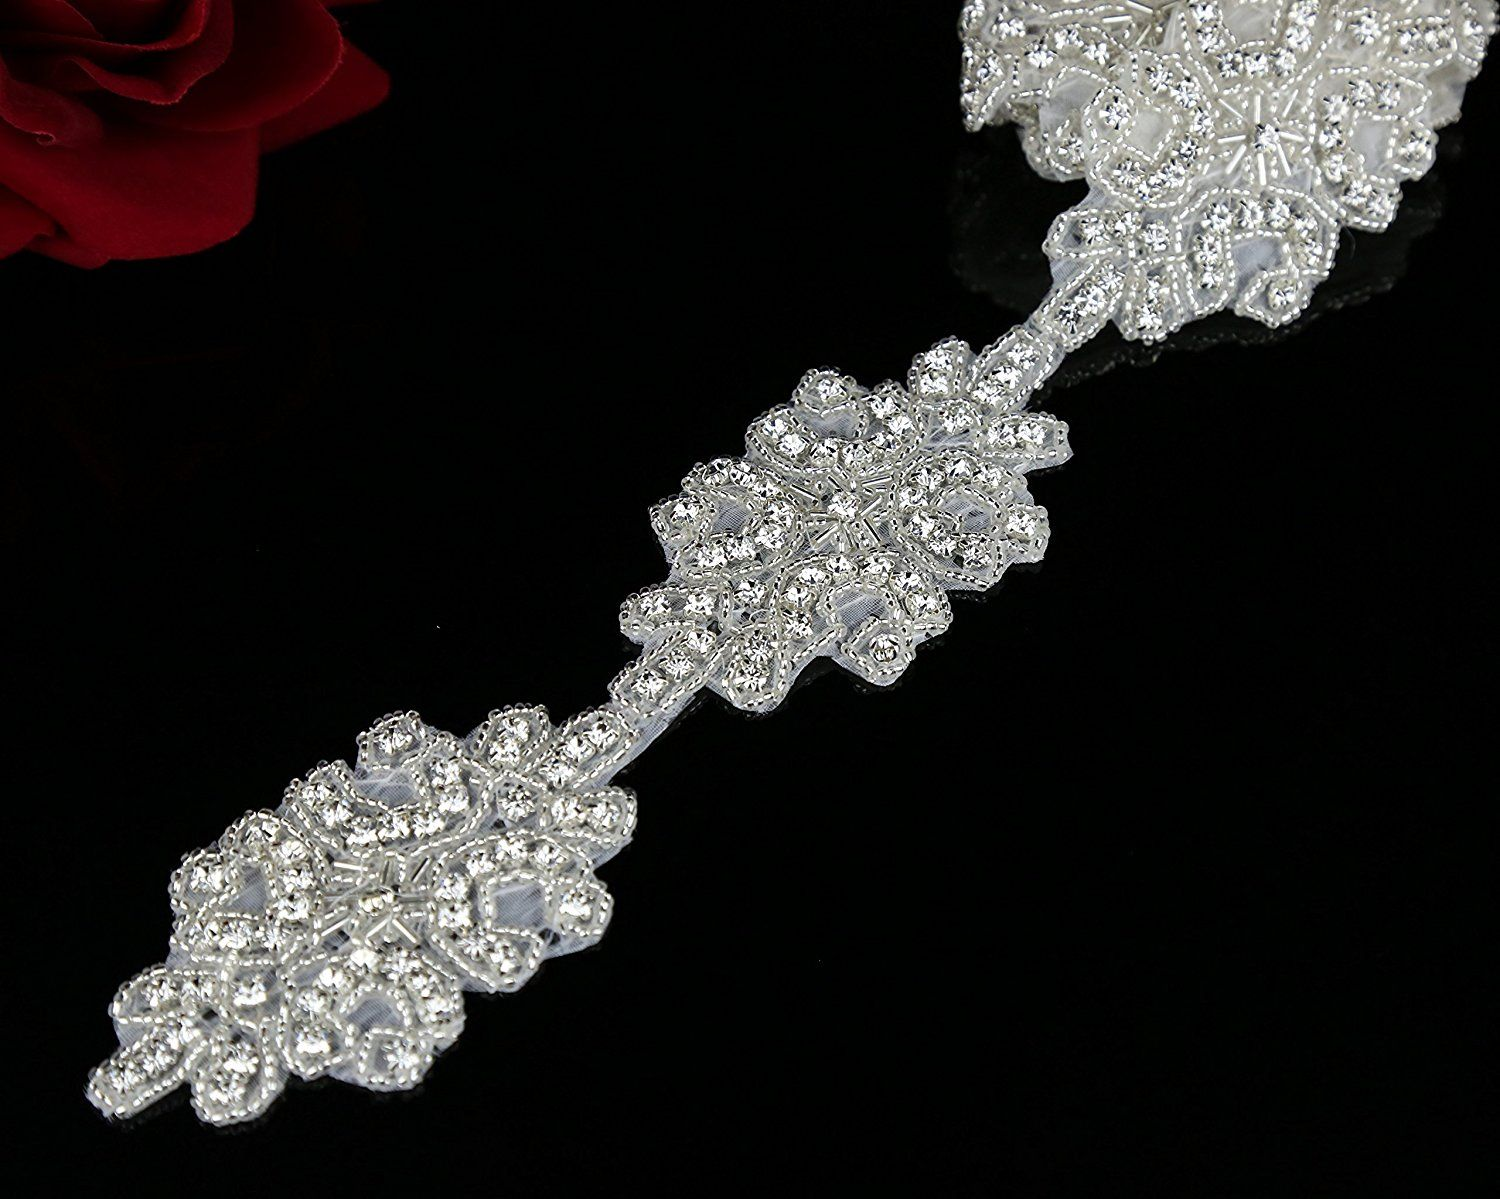 QueenDream Wedding Applique Pearl Trim Applique Fashion Headband Crystal Sash Belt Applique Pearl Rhinestone Applique Socialite Pearl Rhinestone Applique